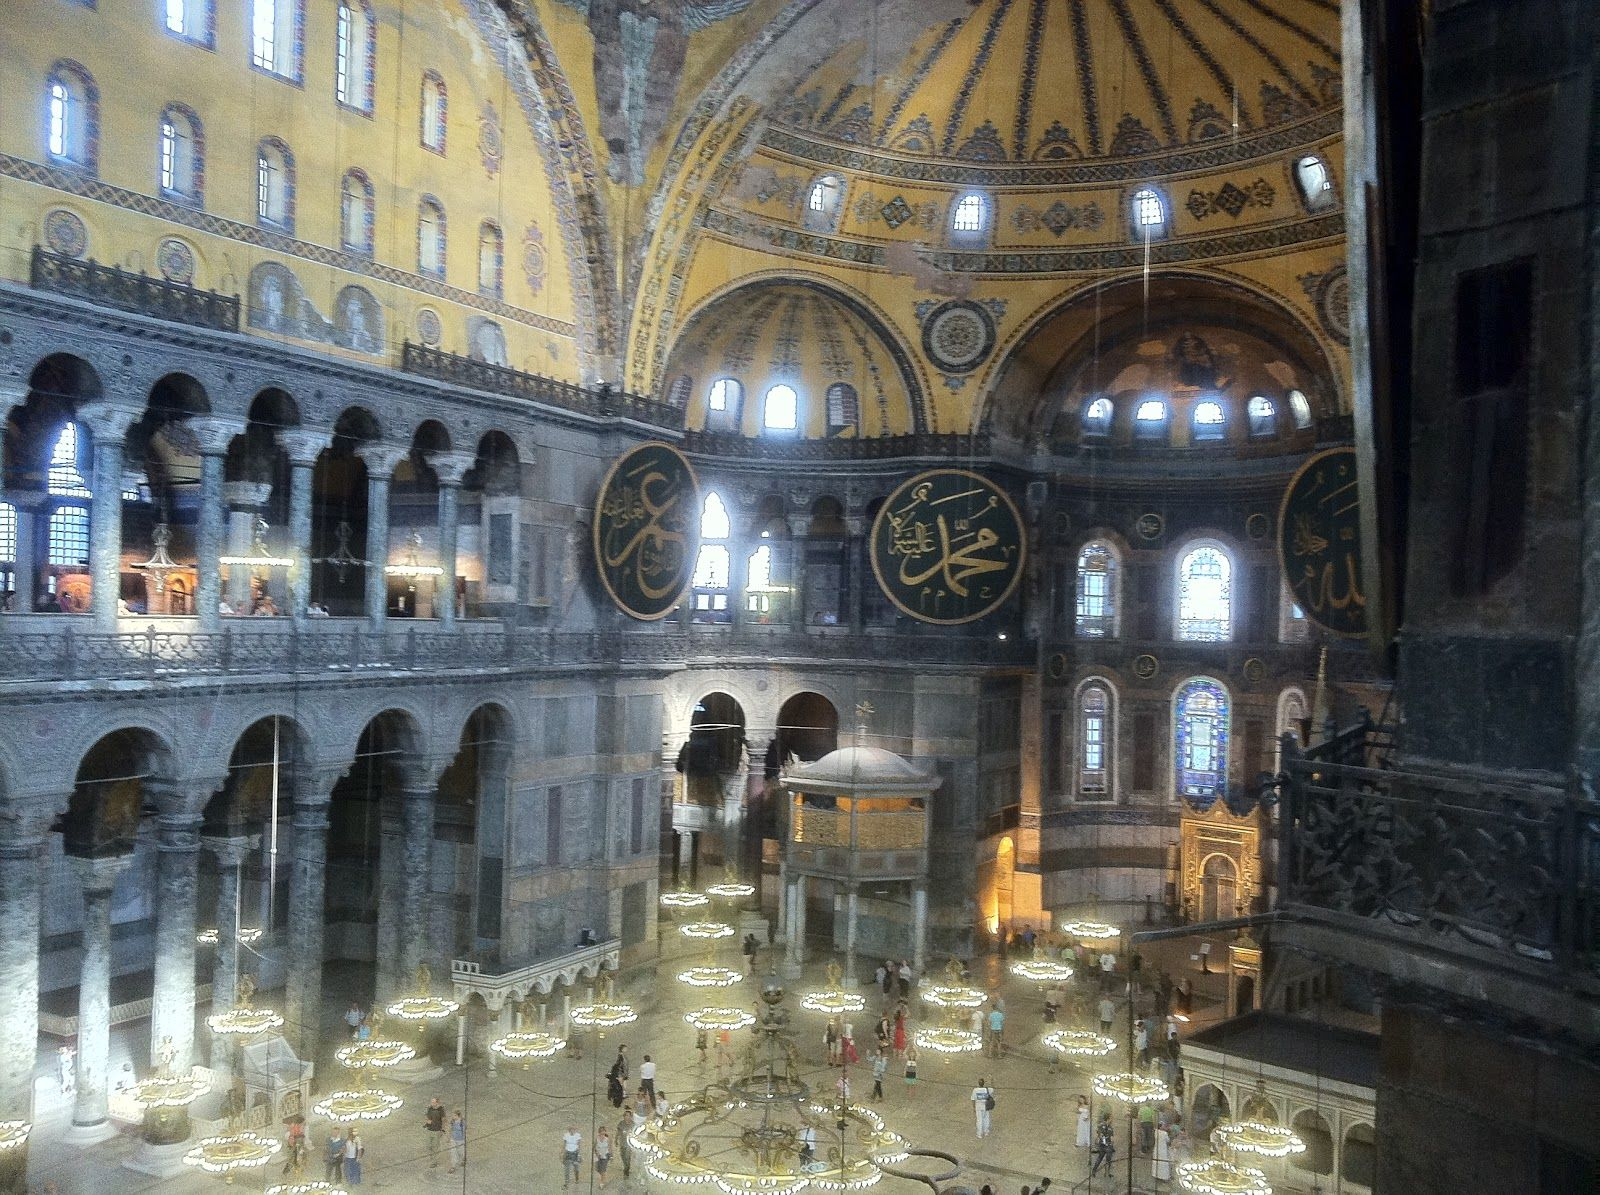 Artemis Interieur Recycle Artemis Columns Interior Of Hagia Sophia The